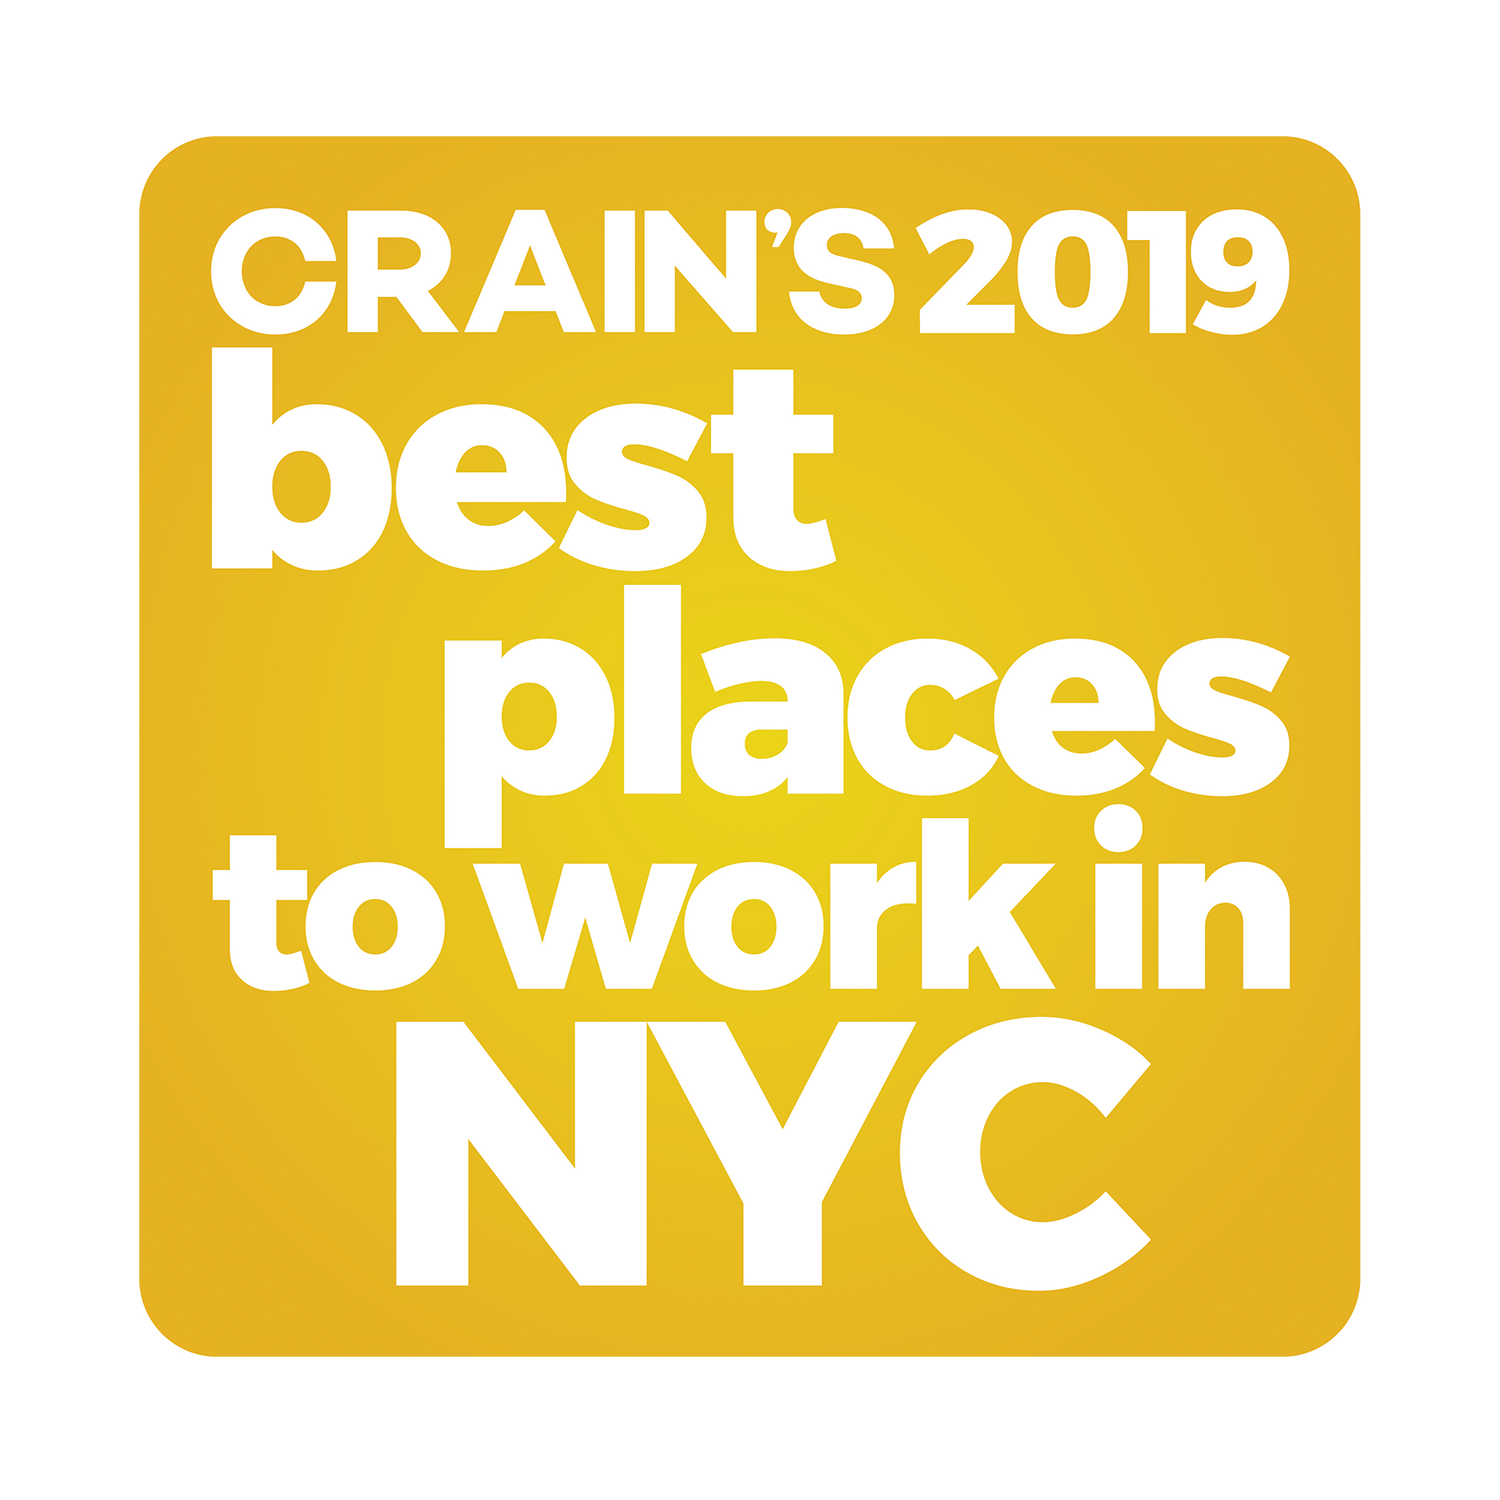 Crain's best places to work in NYC 2020